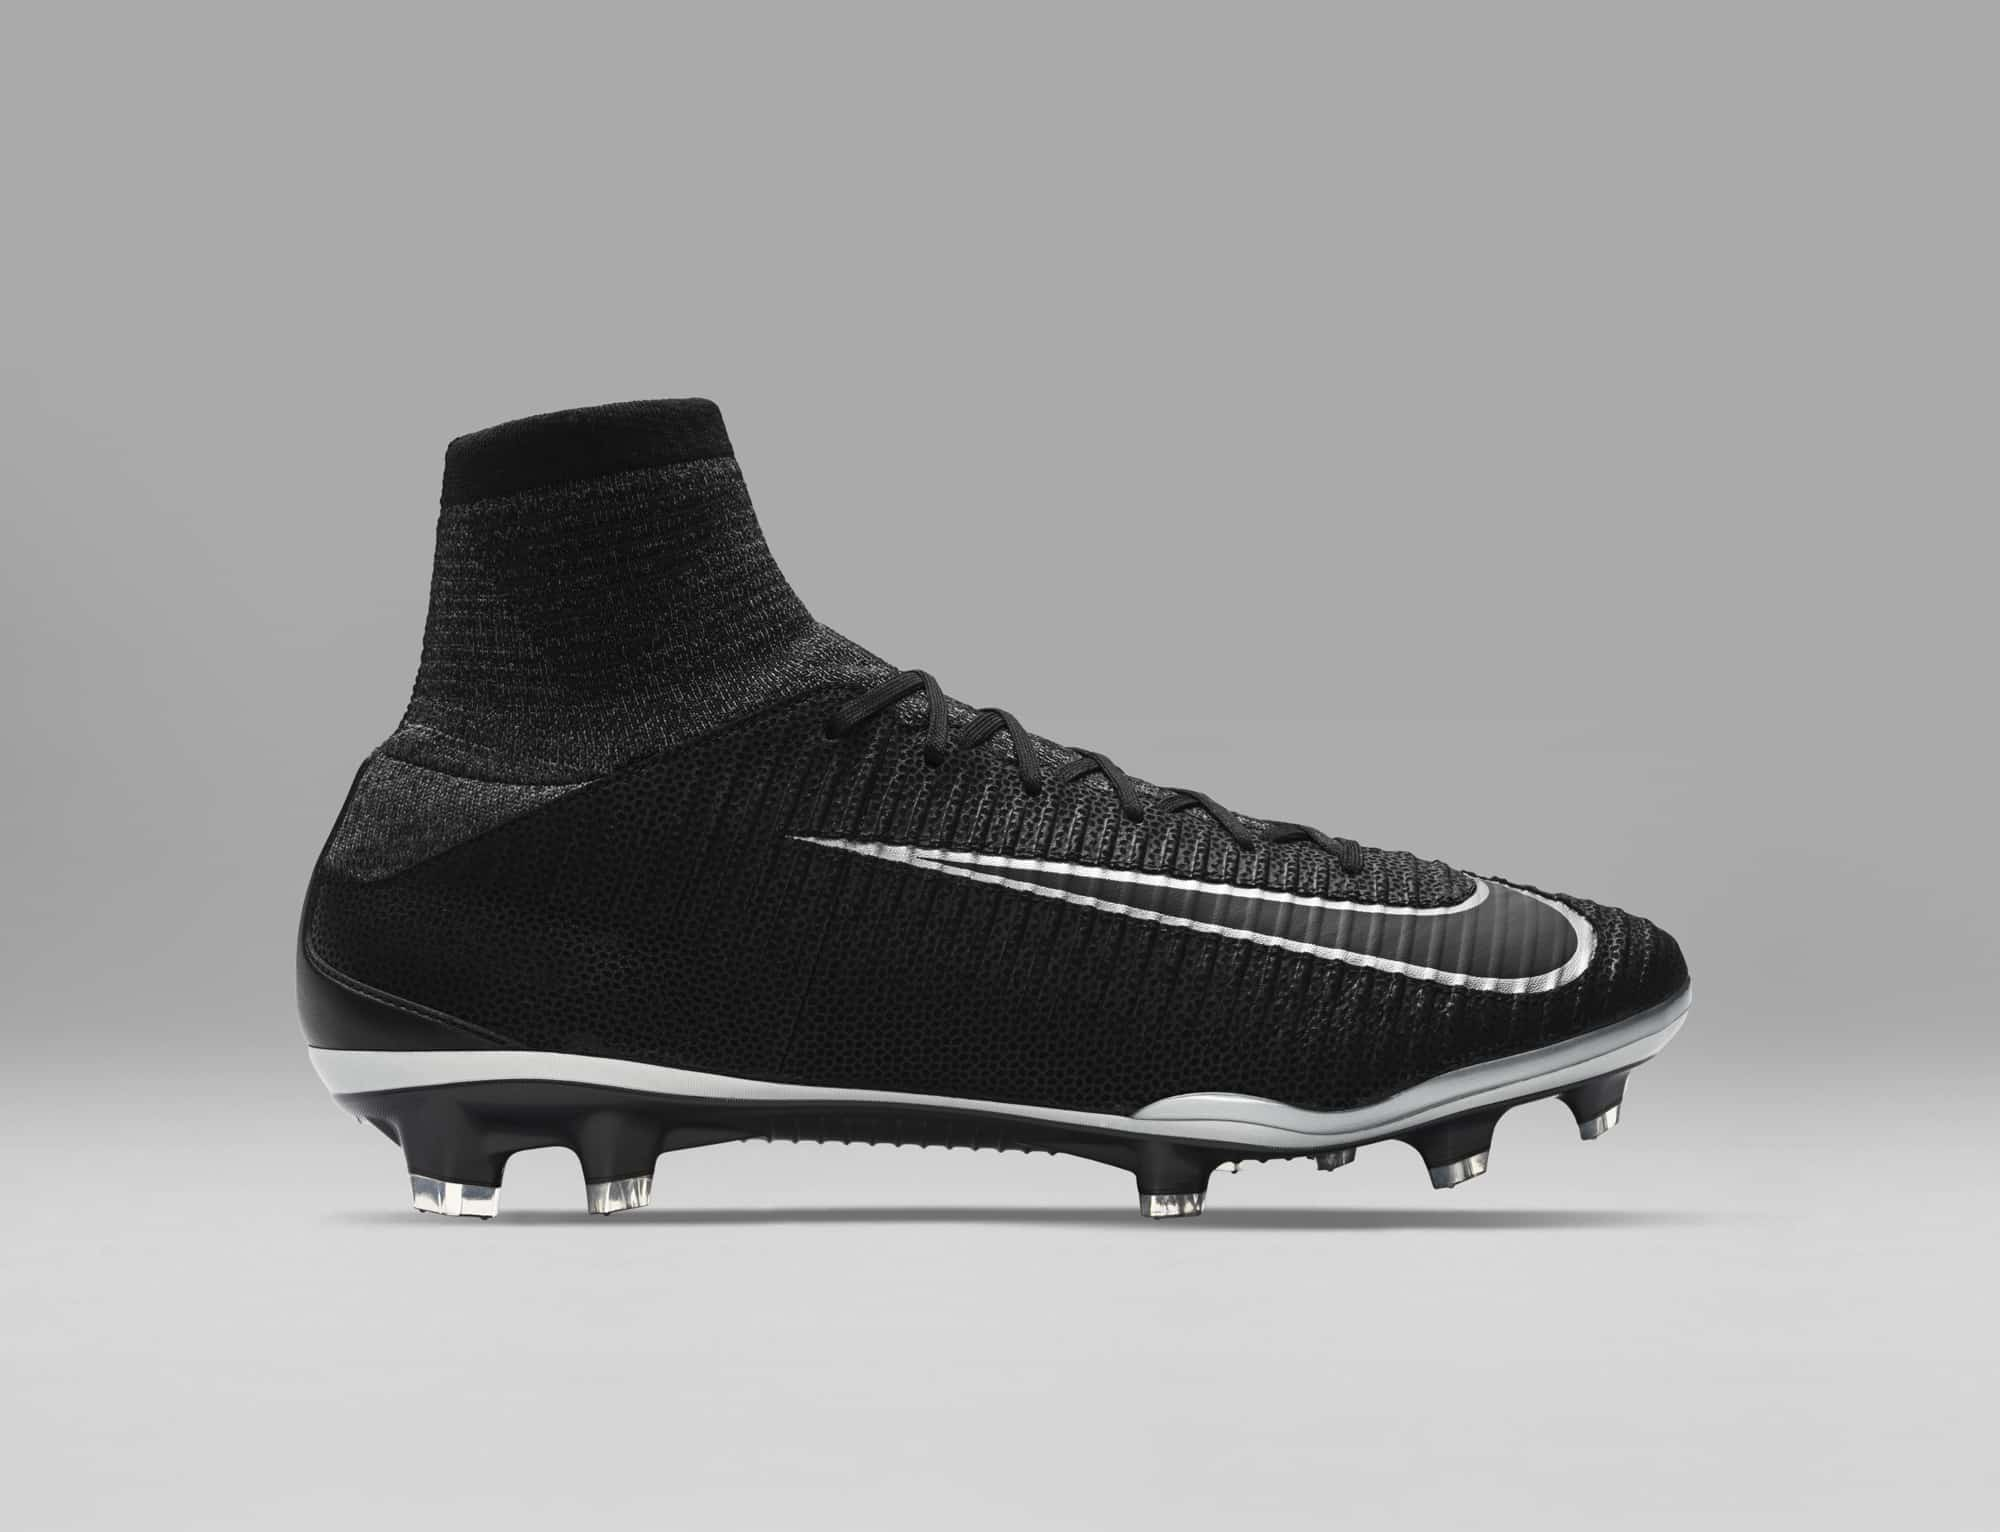 chaussures-football-nike-mercurial-superfly-v-tech-craft-img4